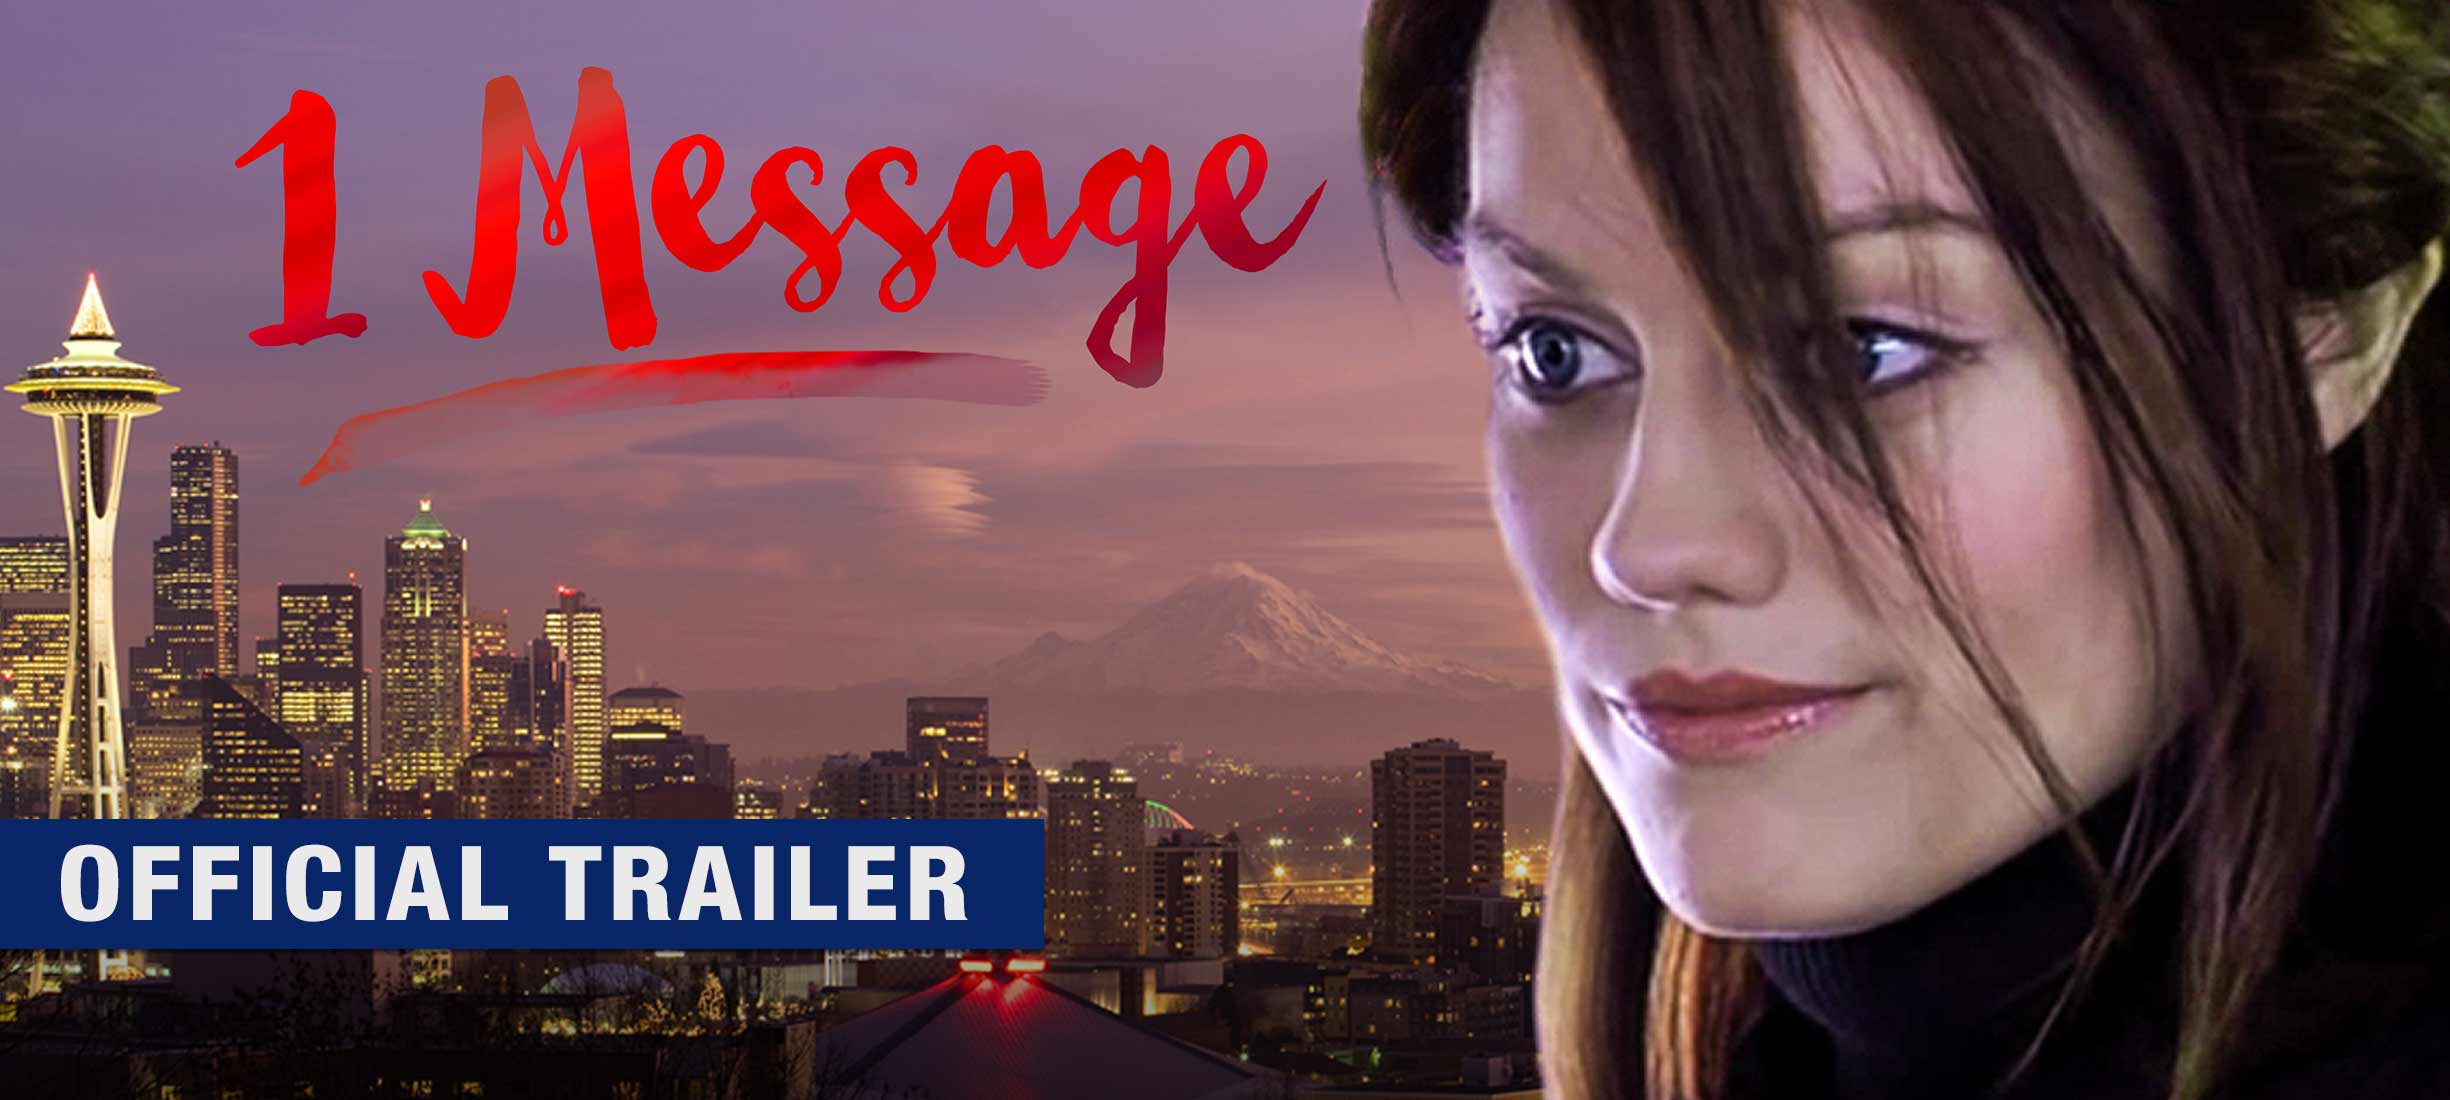 1 Message - Official Trailer